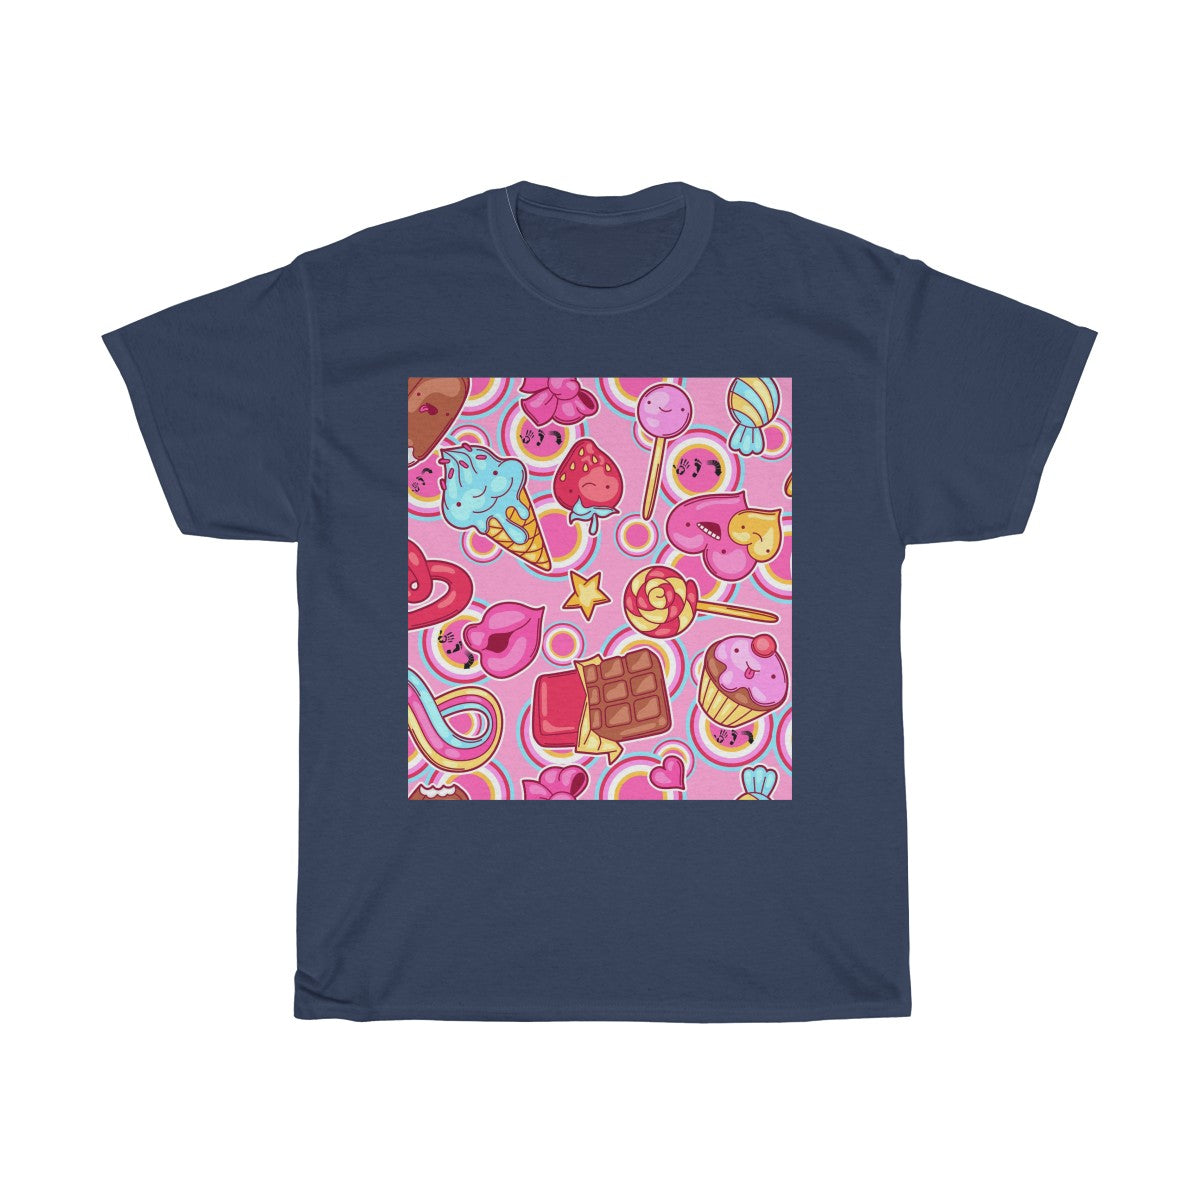 Five Toes Down Sweets Unisex Tee